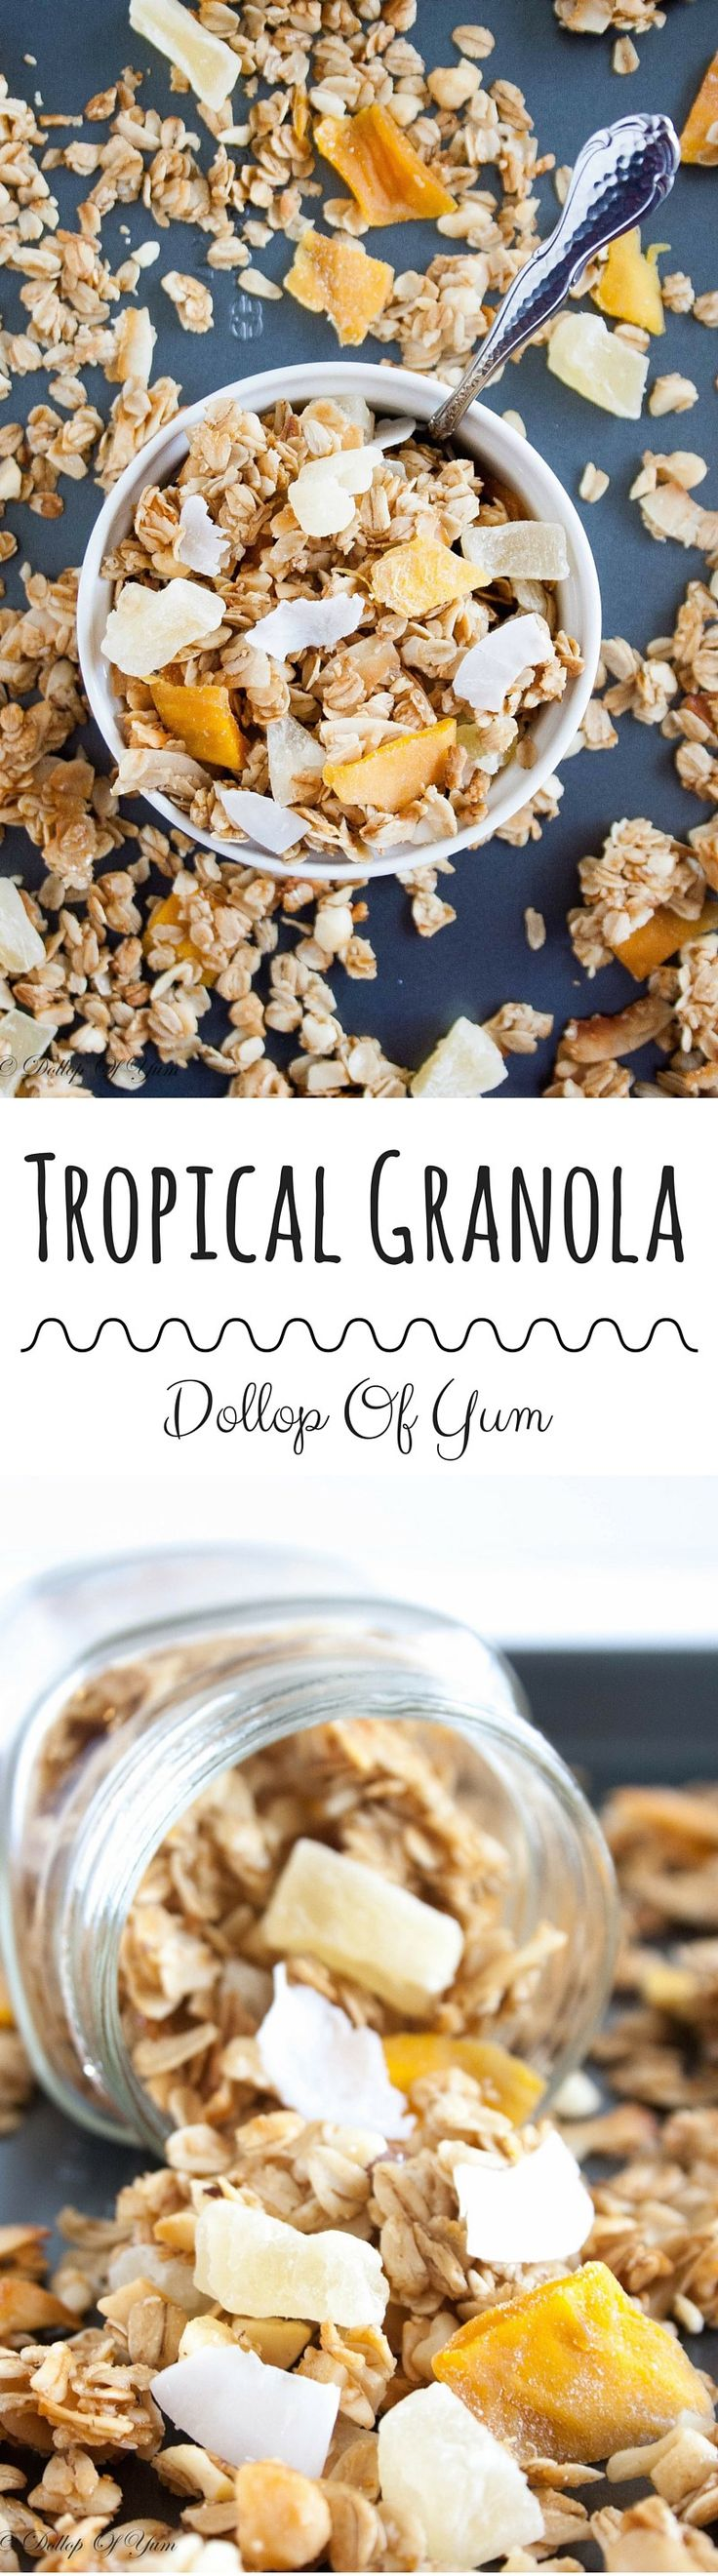 Tropical Granola.  Healthier homemade granola packed with coconut flakes, dried pineapple, and dried mango.  The perfect summer snack!